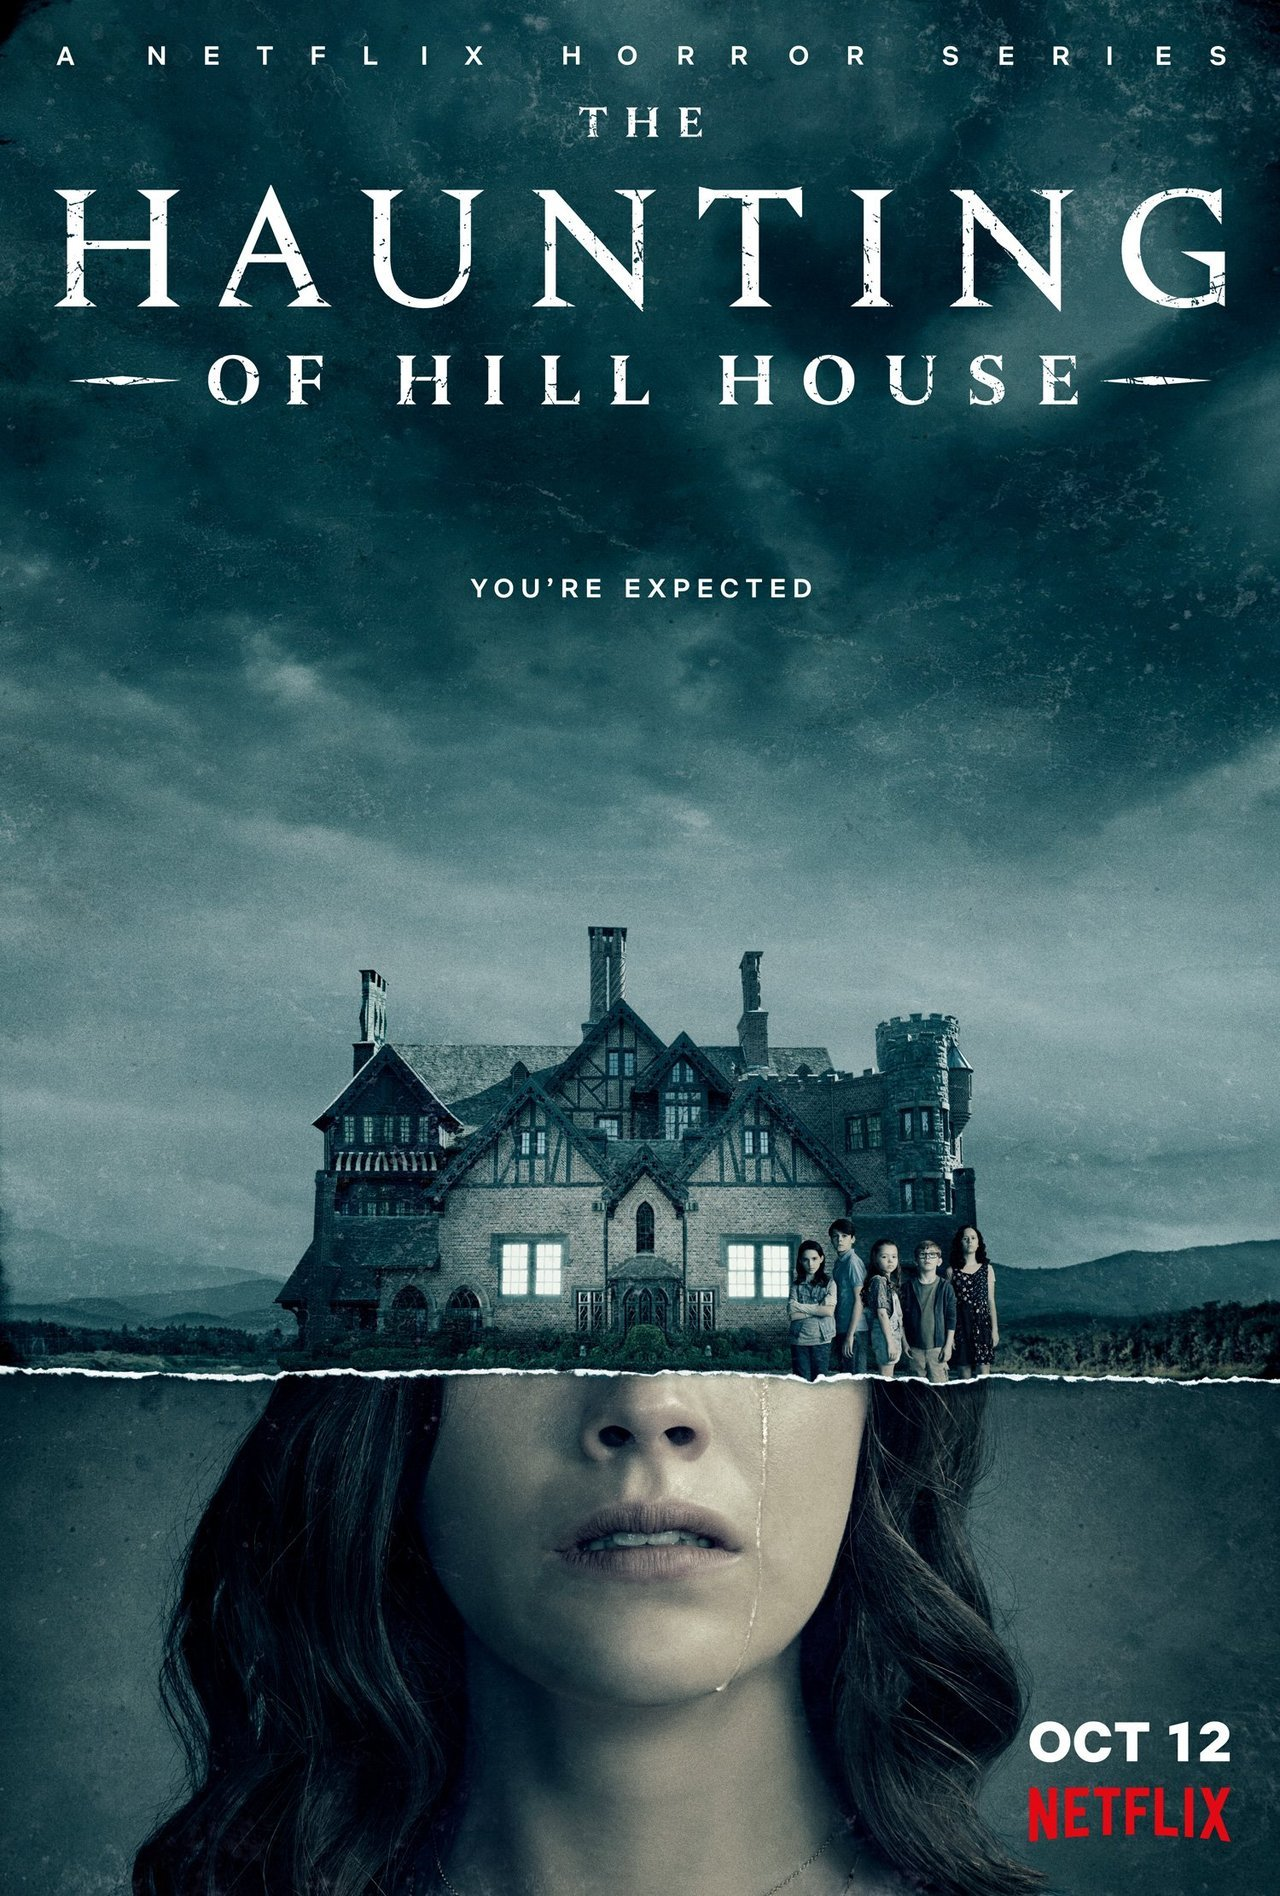 Image result for the haunting of hill house movie poster